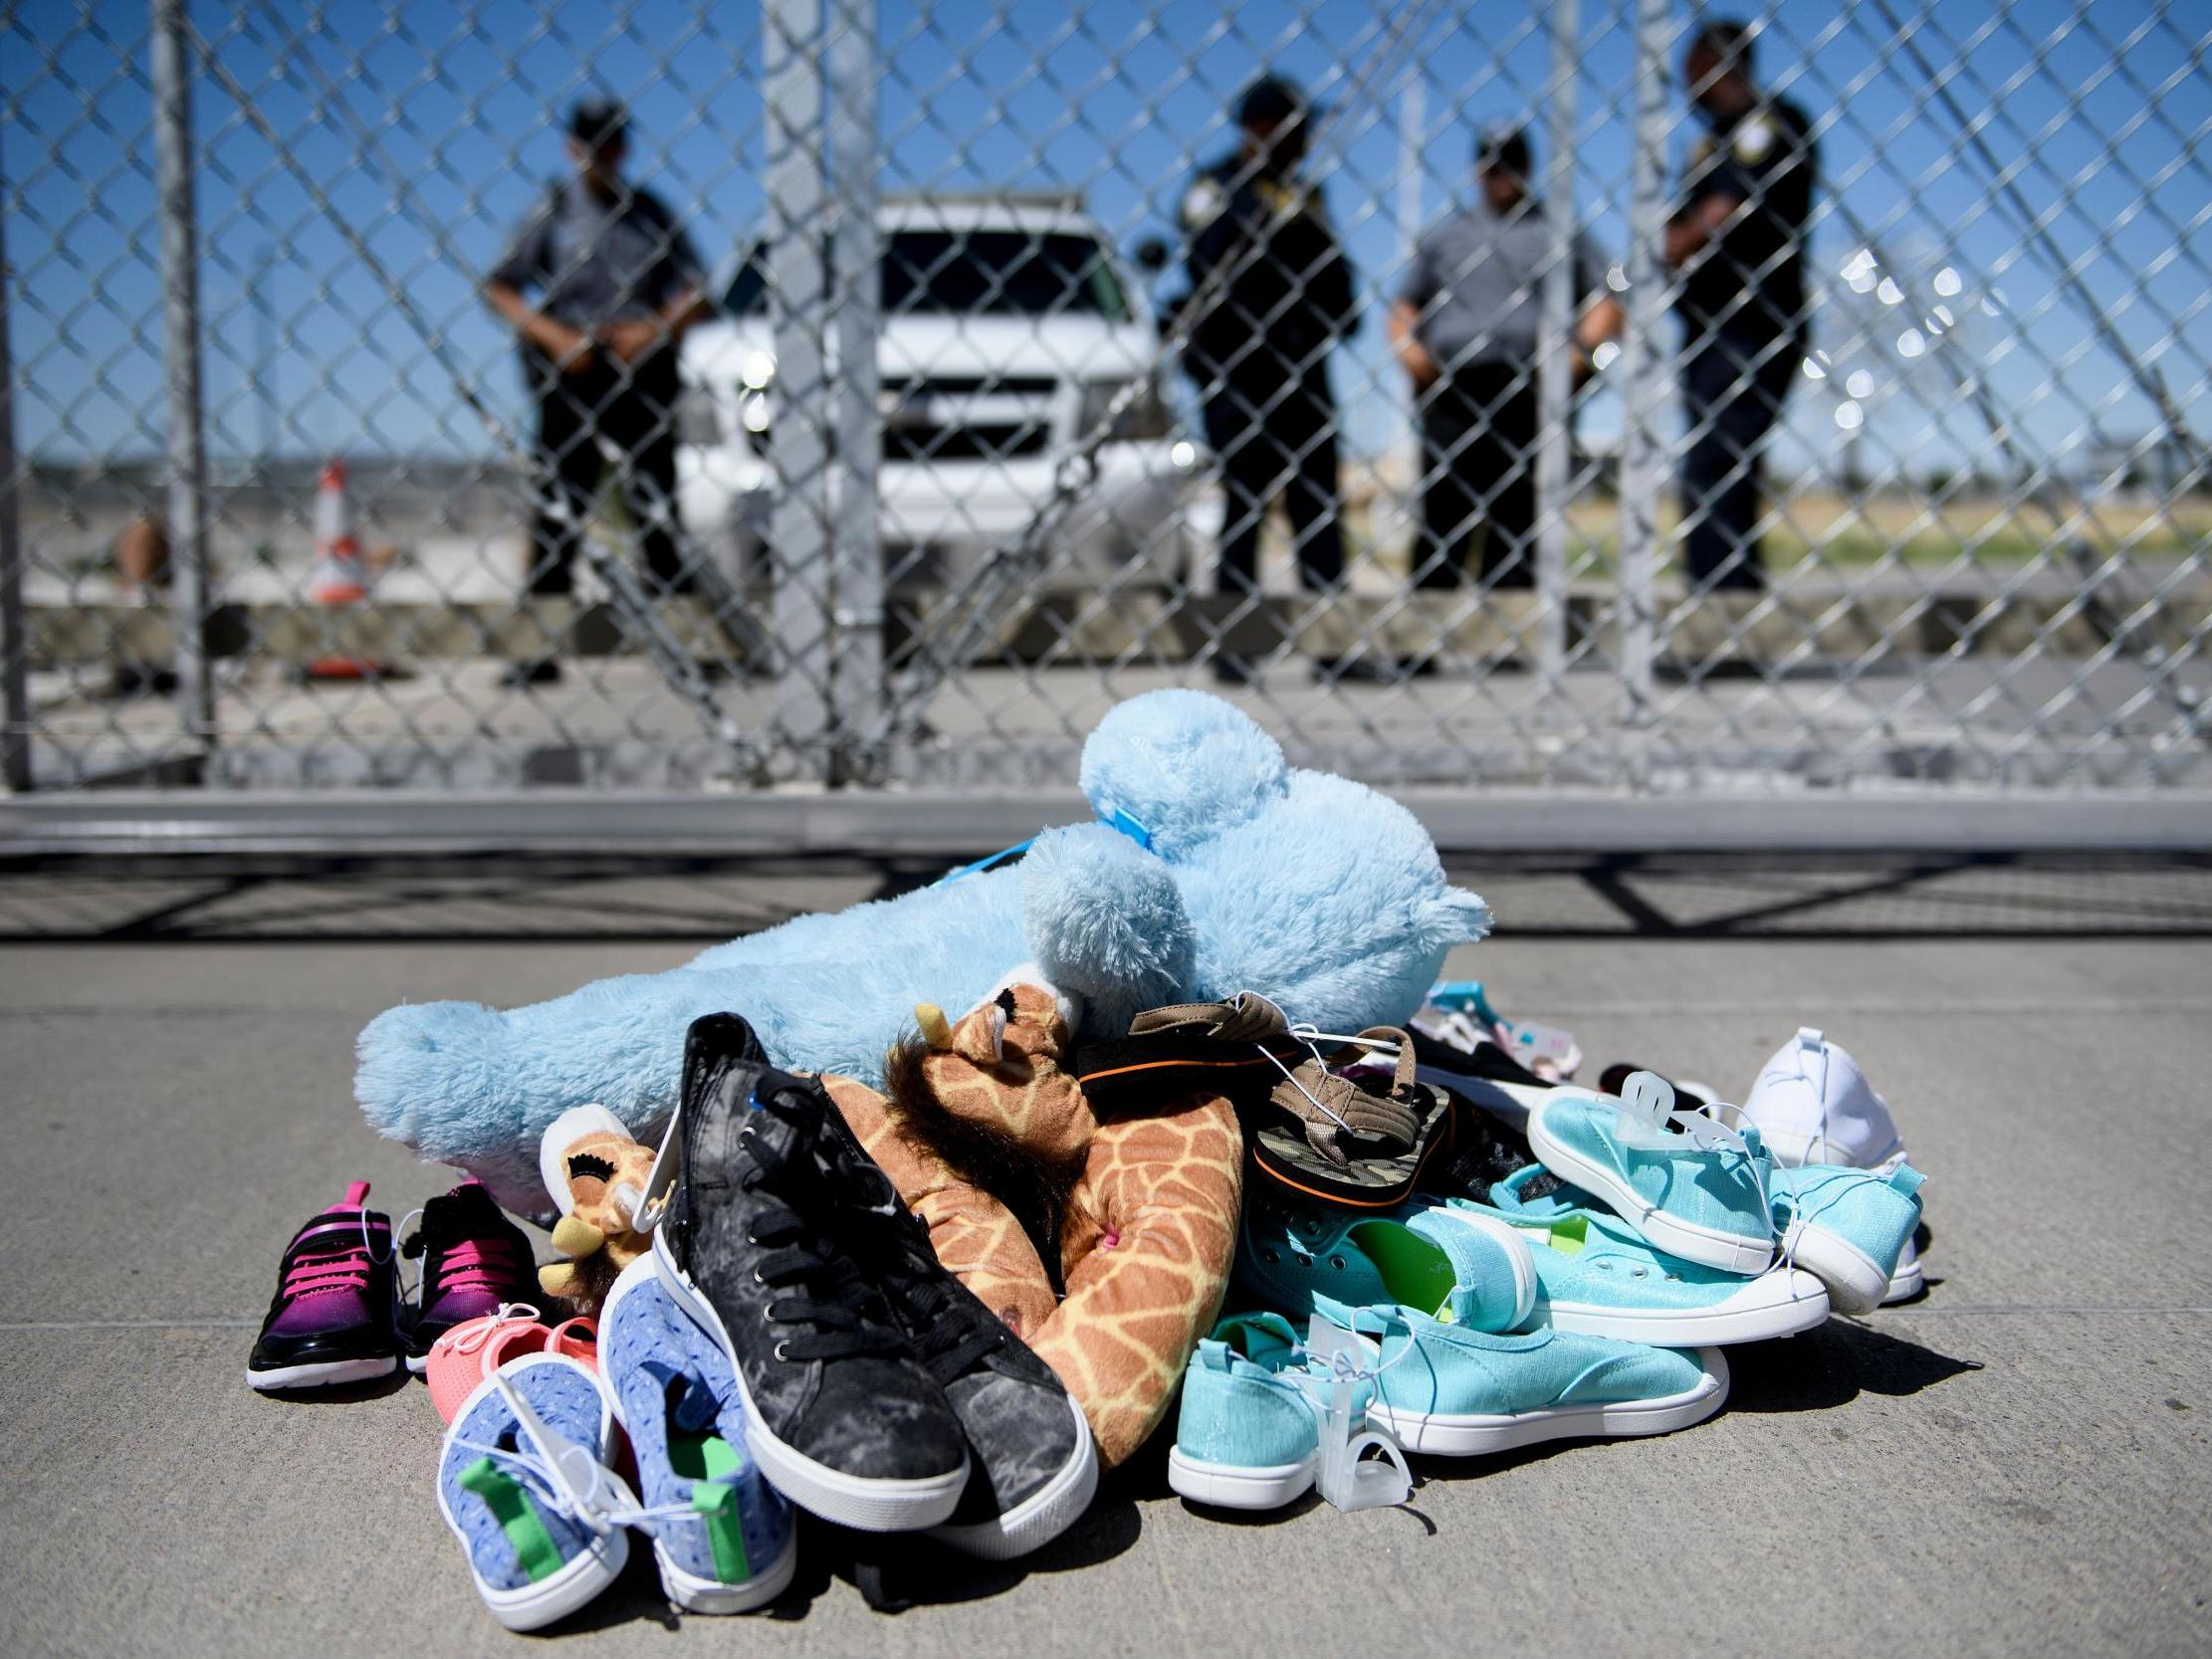 Trump administration detains nearly 70,000 migrant children in record high